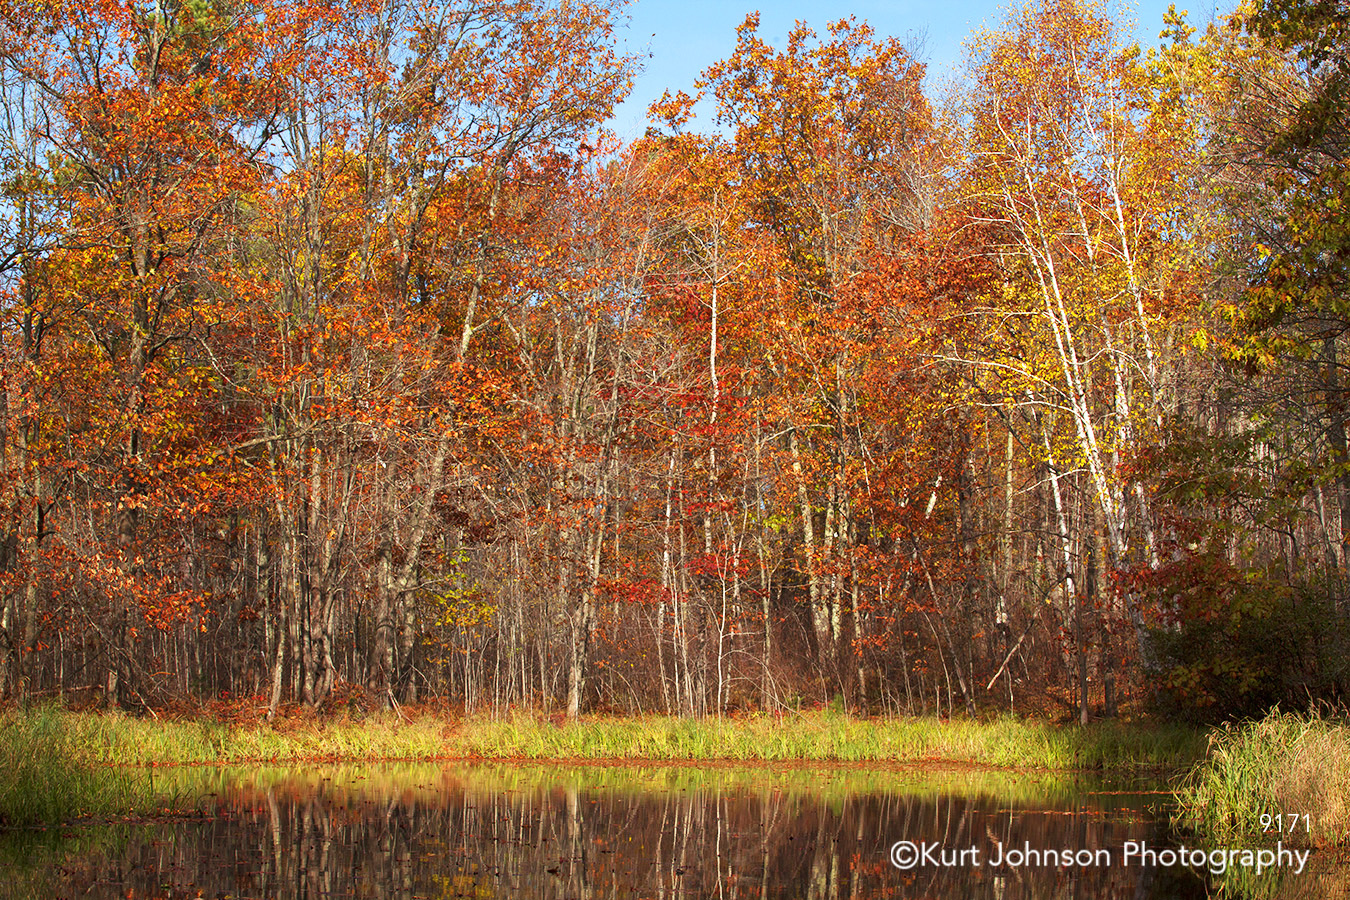 landscape trees water pond fall color birch red orange minnesota grasses